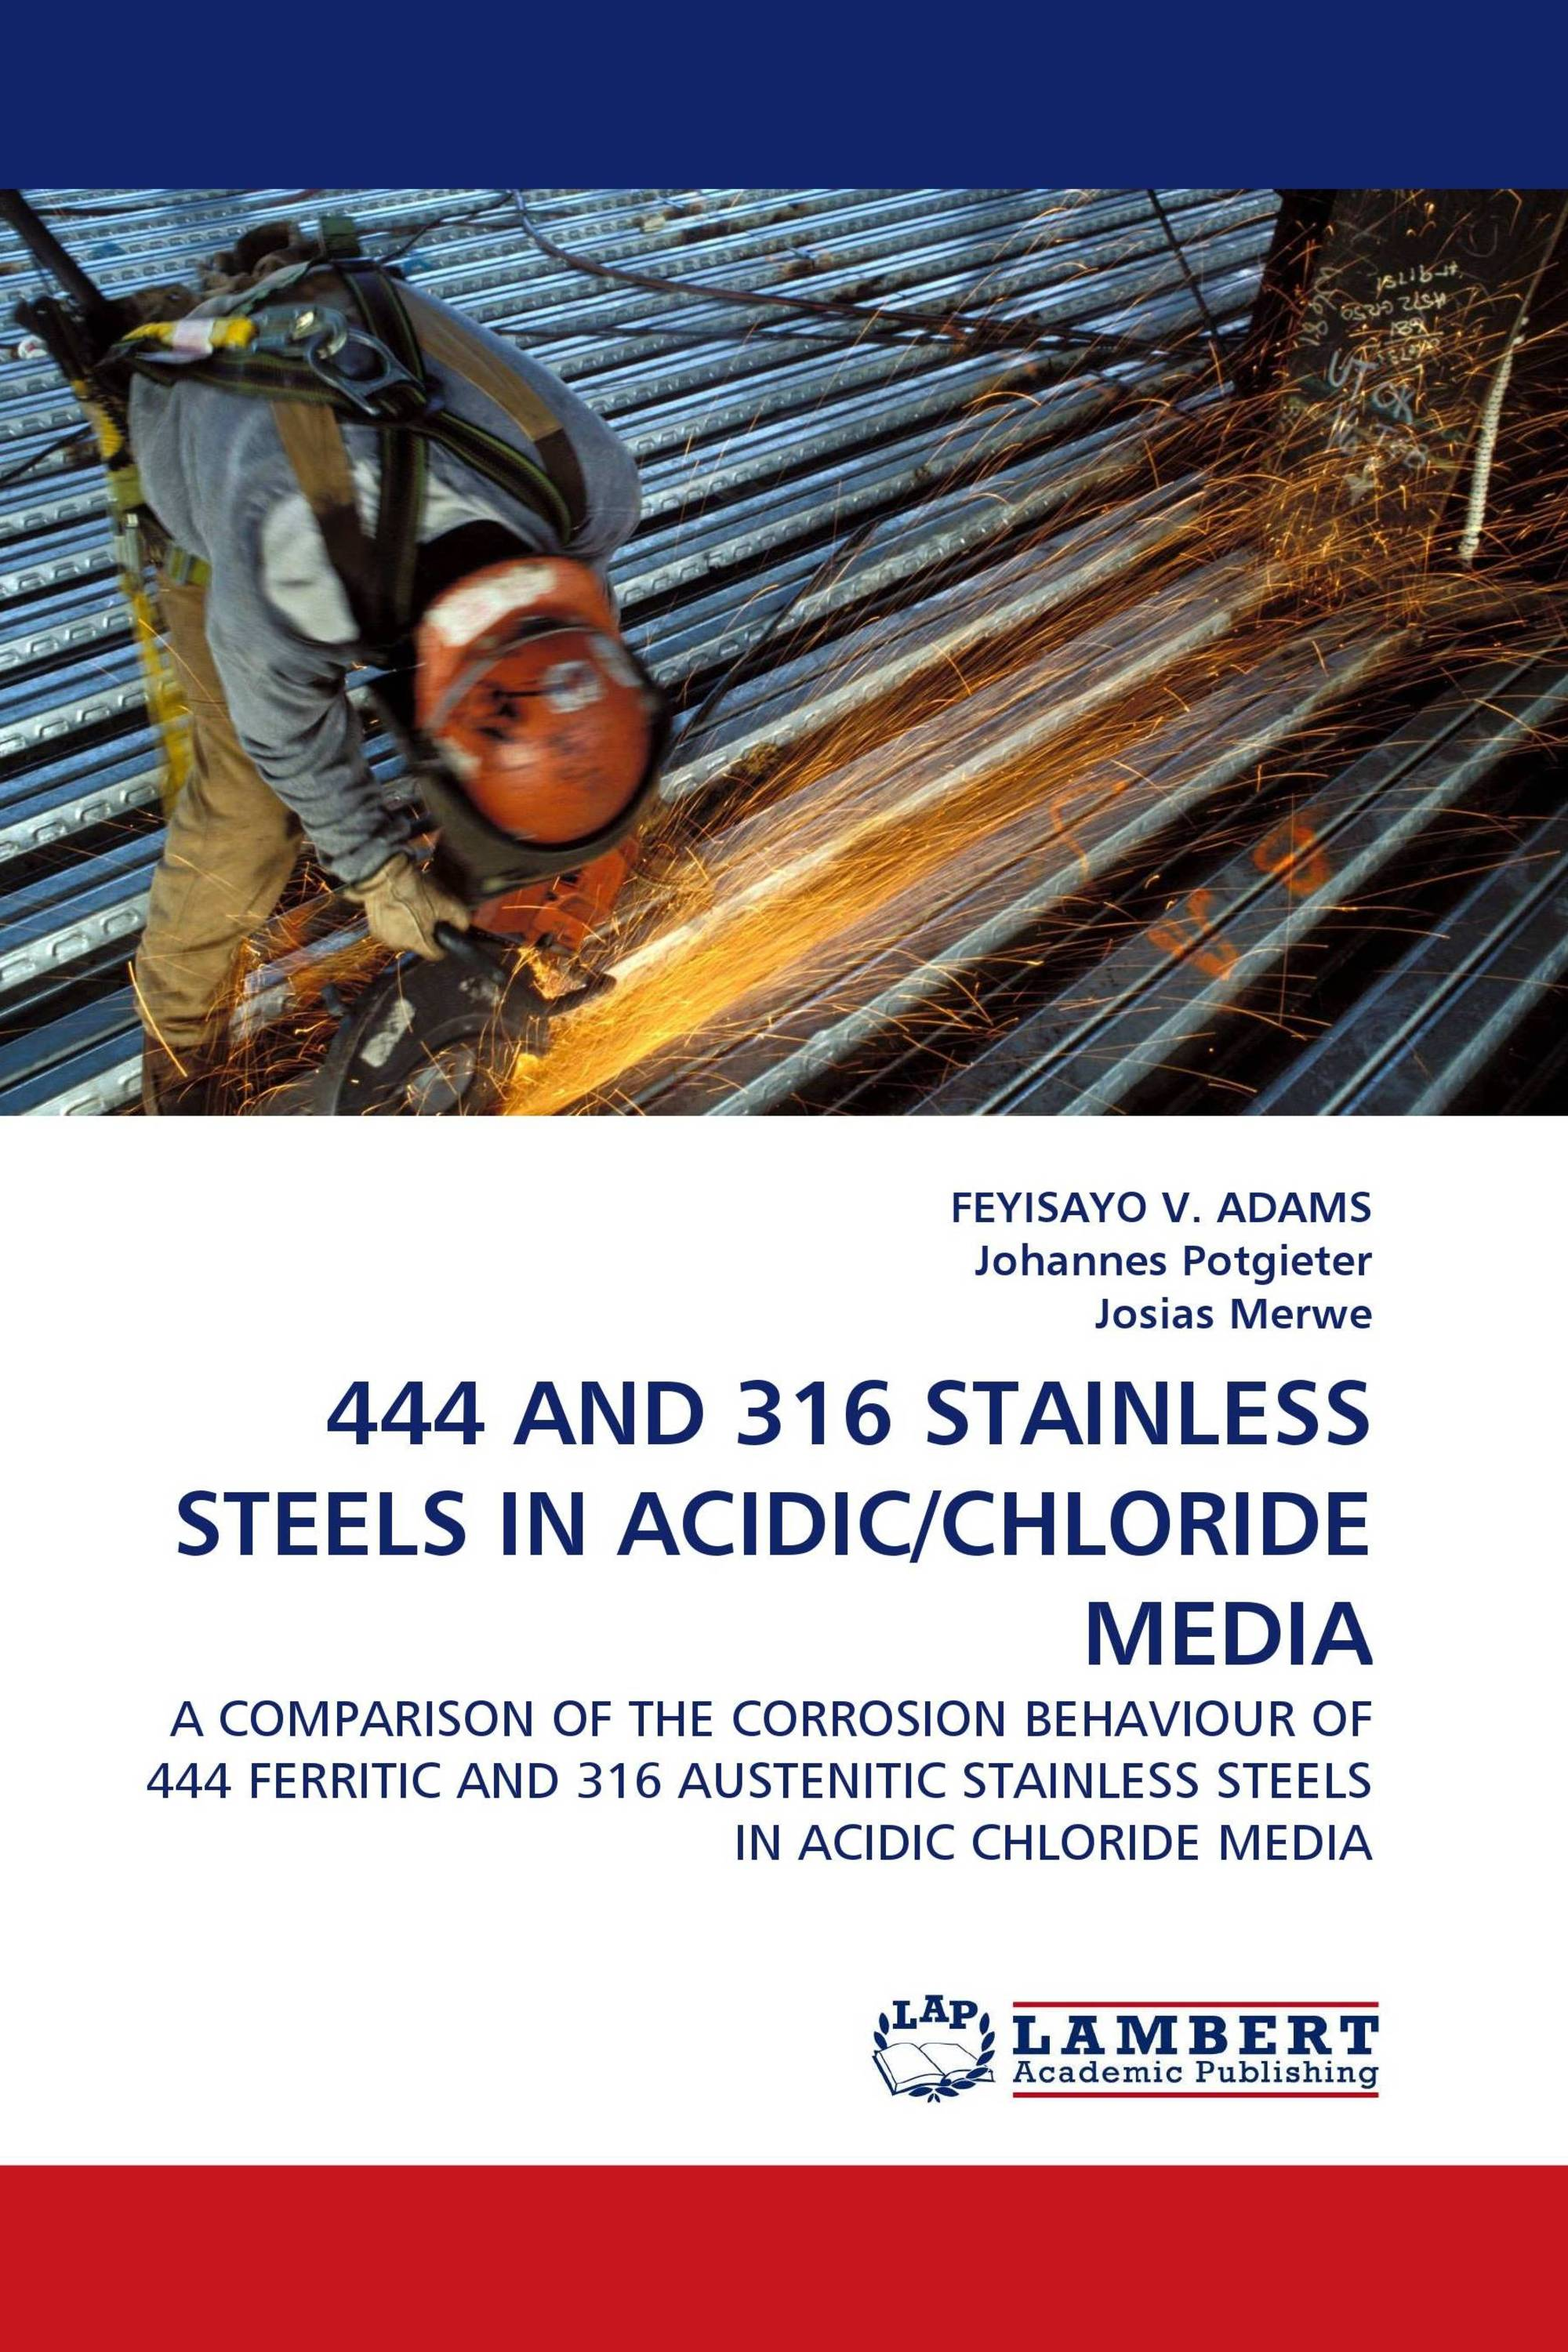 444 AND 316 STAINLESS STEELS IN ACIDIC/CHLORIDE MEDIA